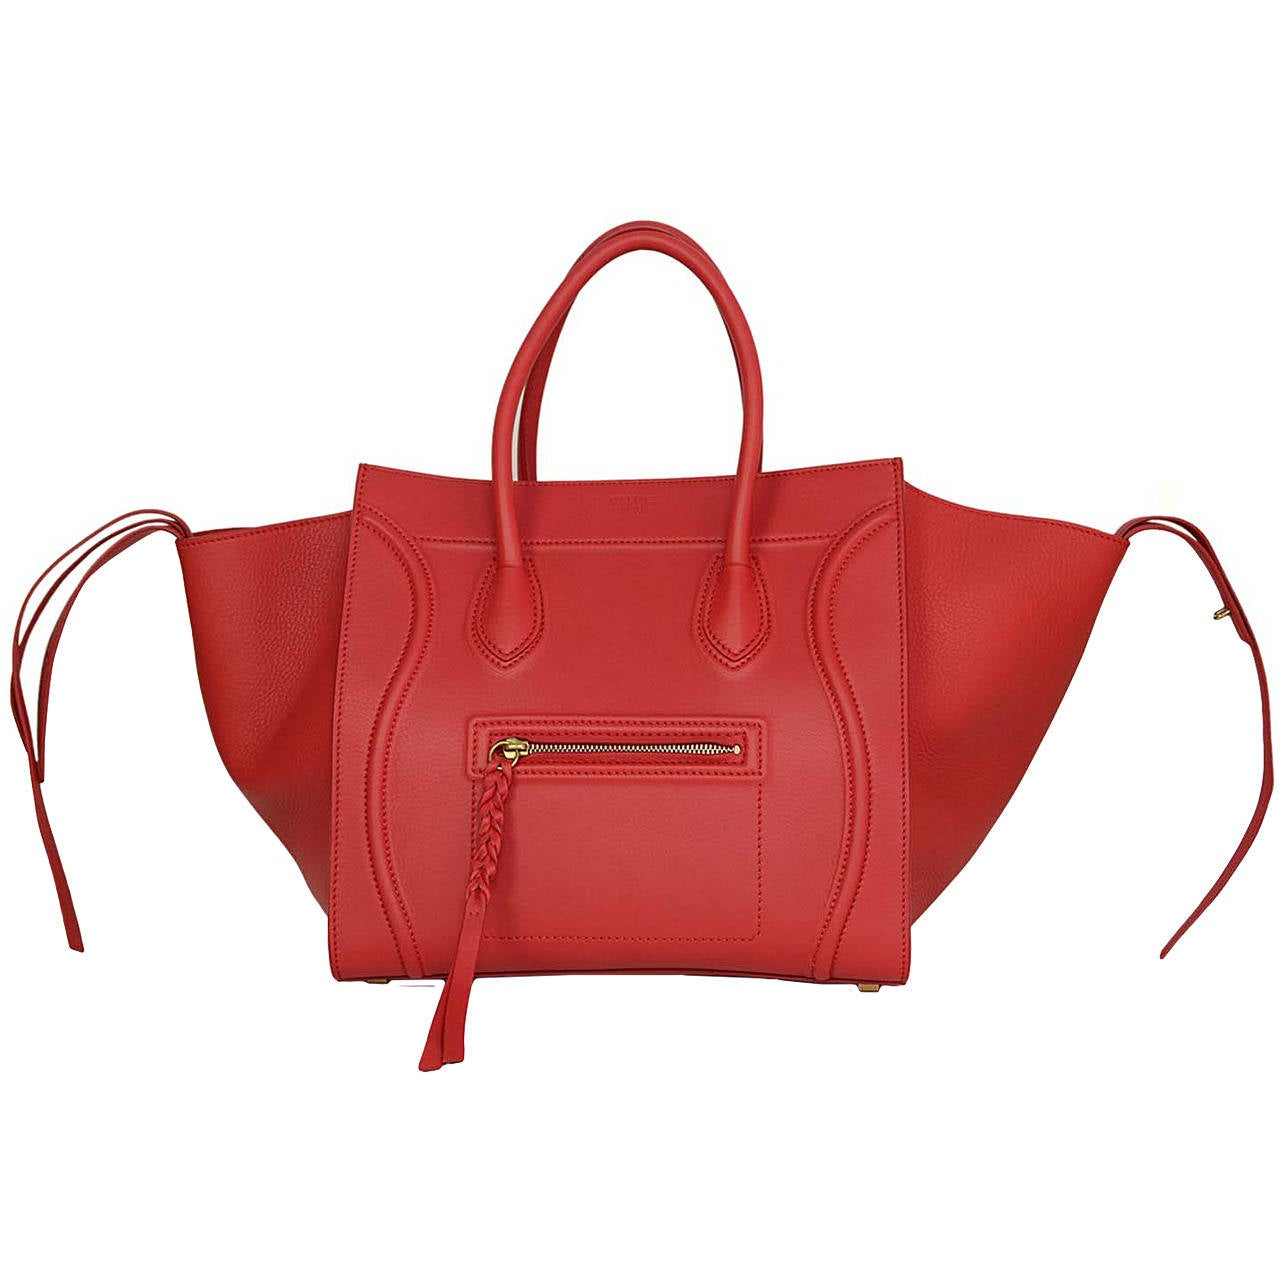 celine bags replica - CELINE Fuchsia Calfskin Medium Luggage Phantom Bag BHW at 1stdibs